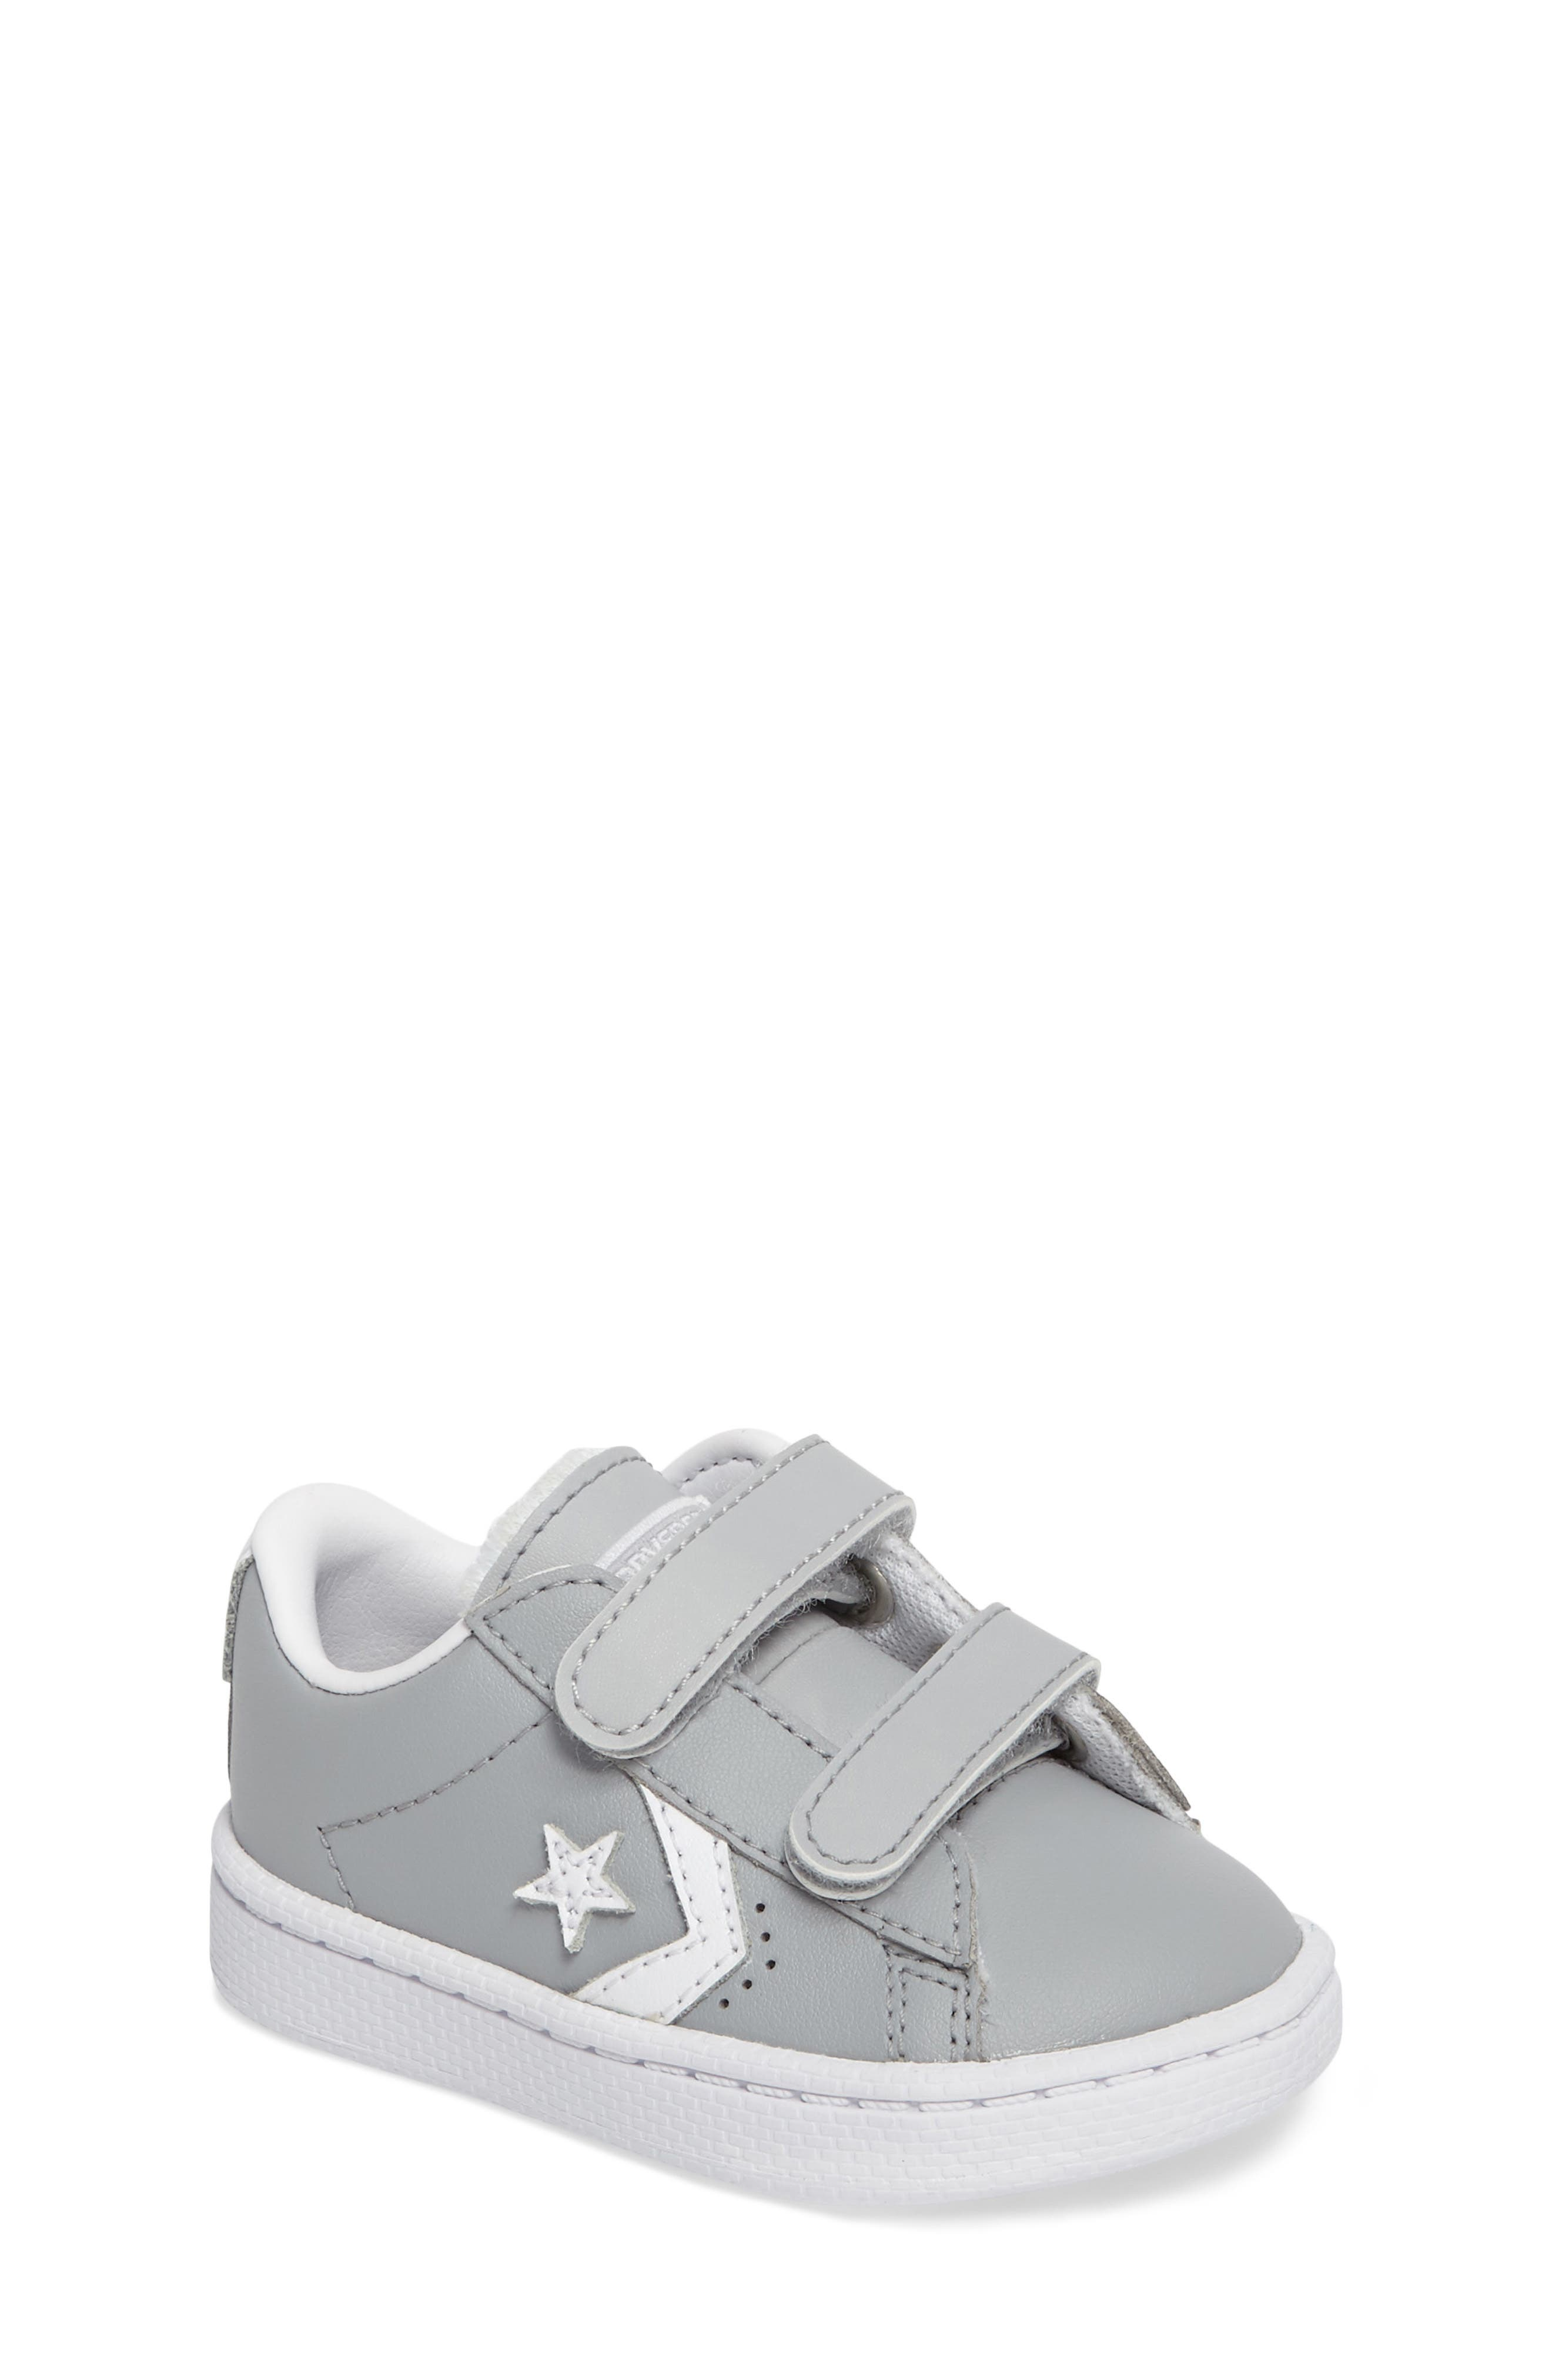 Pro Leather Low Top Sneaker,                             Main thumbnail 1, color,                             097